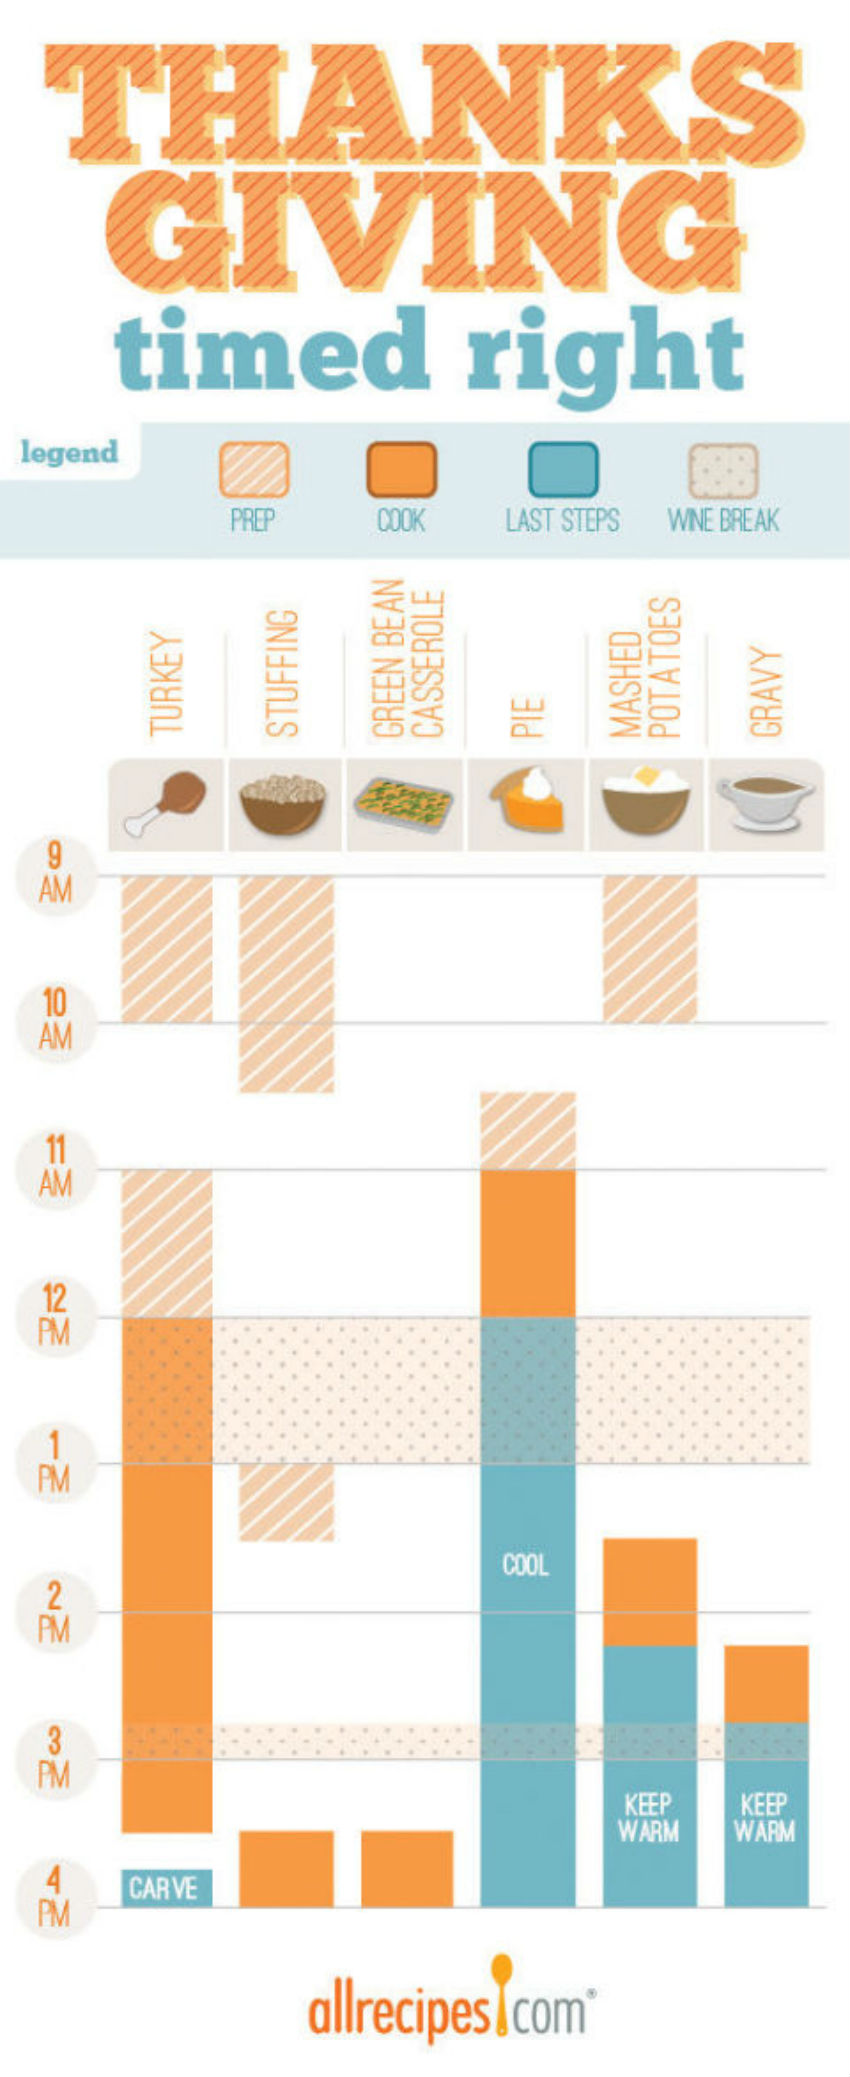 Follow this minute by minute chart and you'll actually have fun! Image Source: Country Living